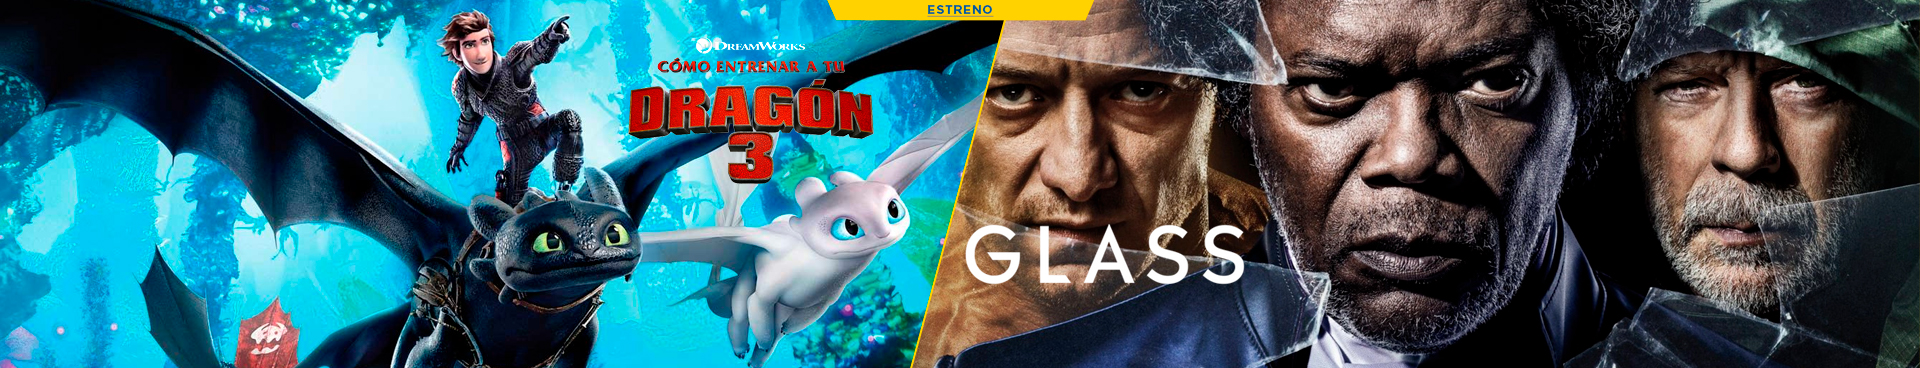 Como-entrenar-a-tu-dragon-glass